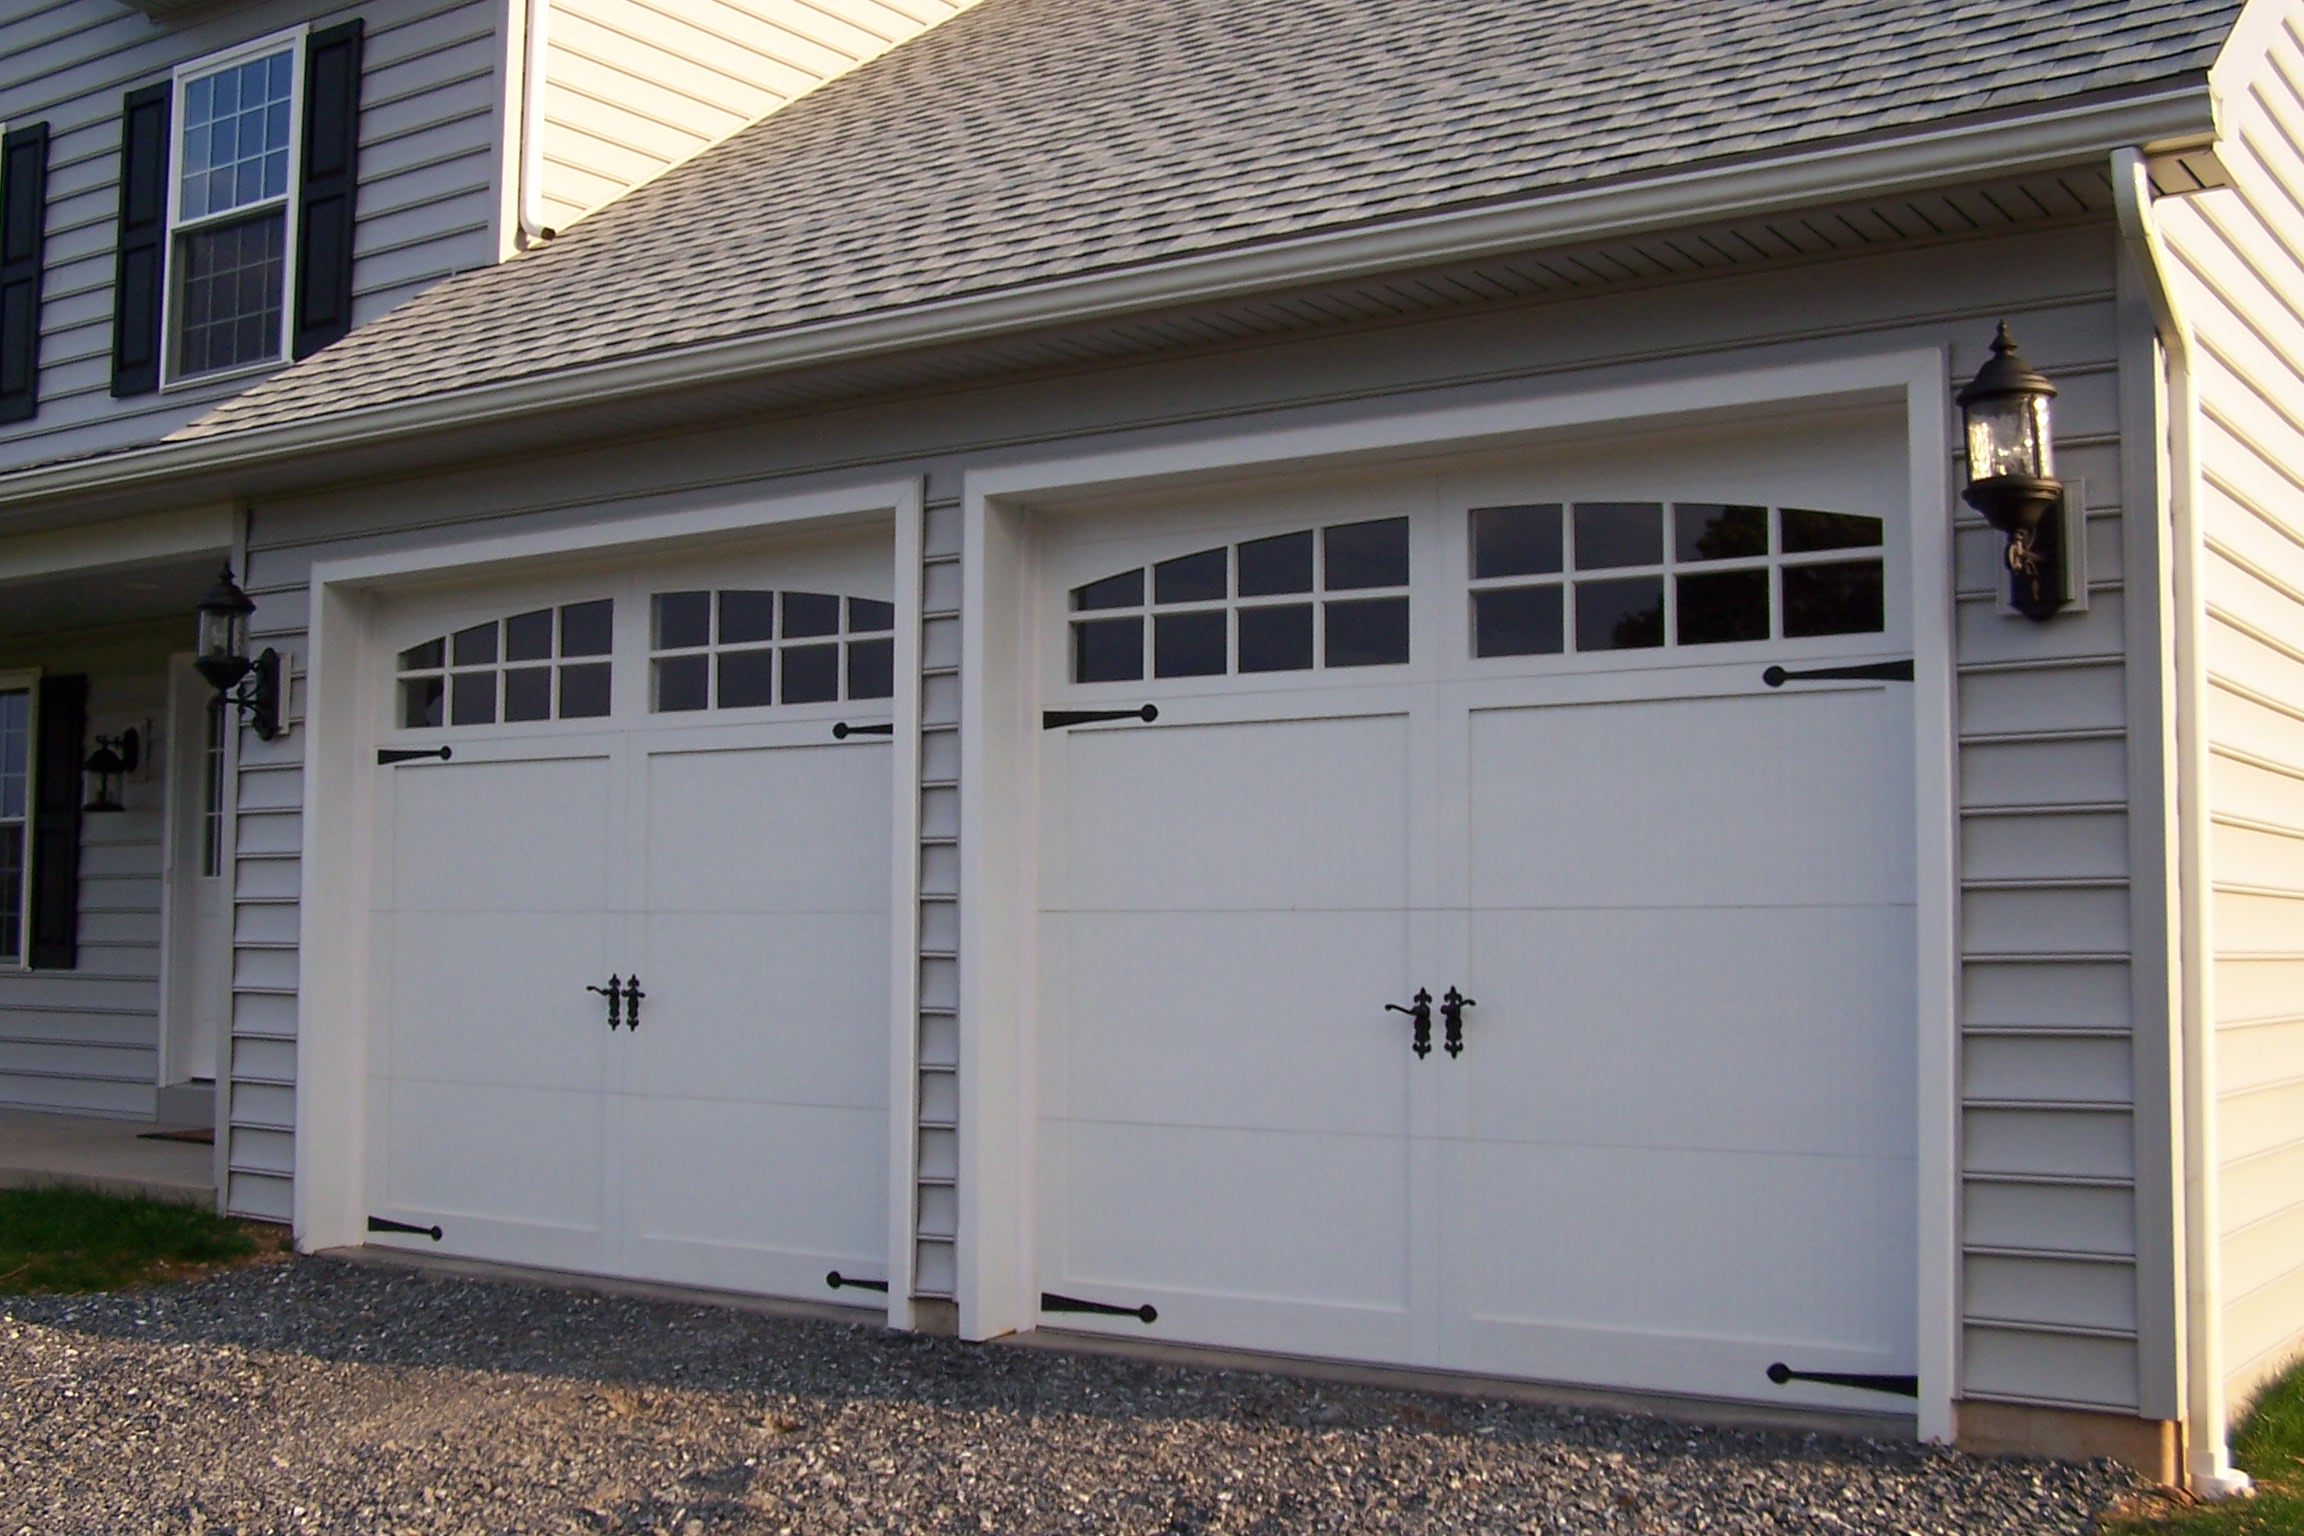 Sectional type steel with exterior cladding overhead garage doors in the  style of old carriage house doors. Garage door   Wikipedia